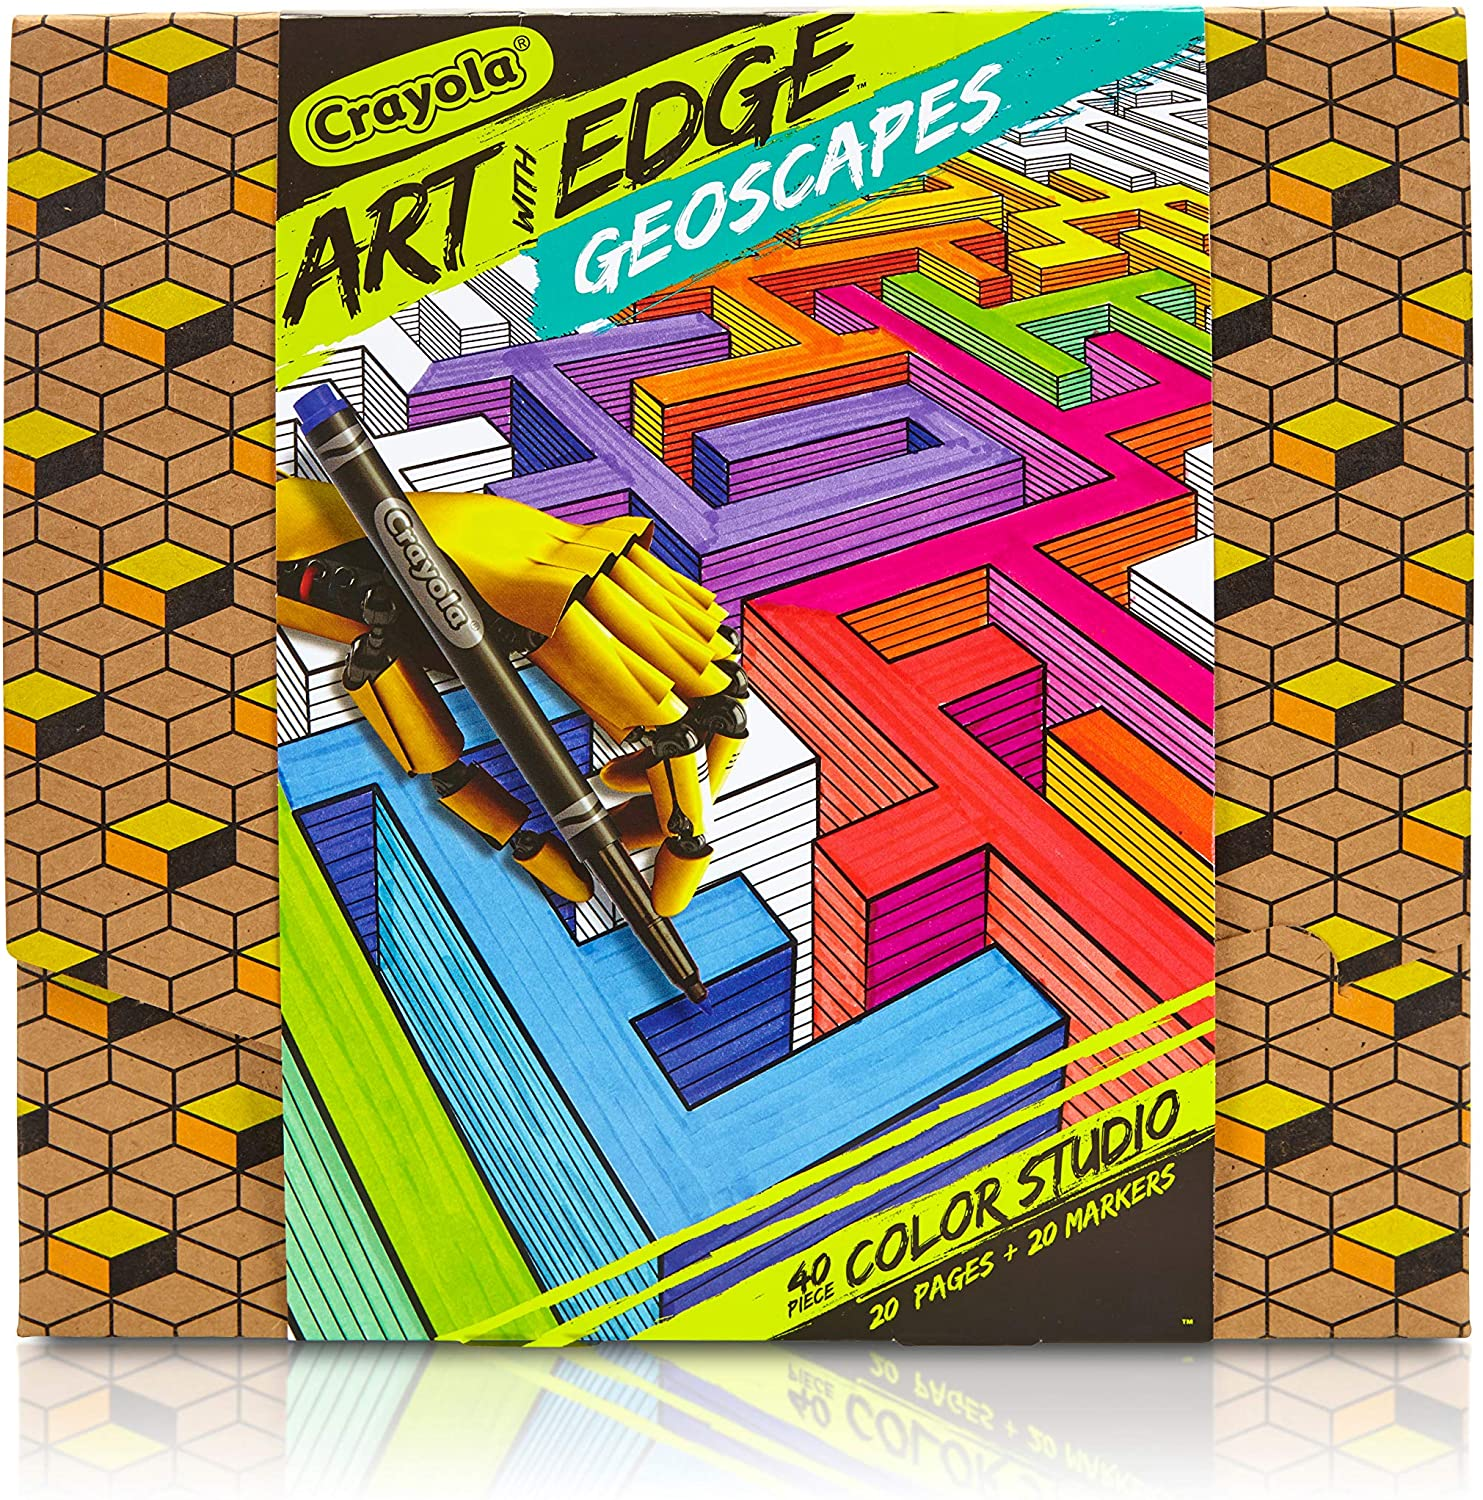 Crayola Art with Edge Coloring Set, Geometric Coloring Pages, 20 Pages (04-0029)